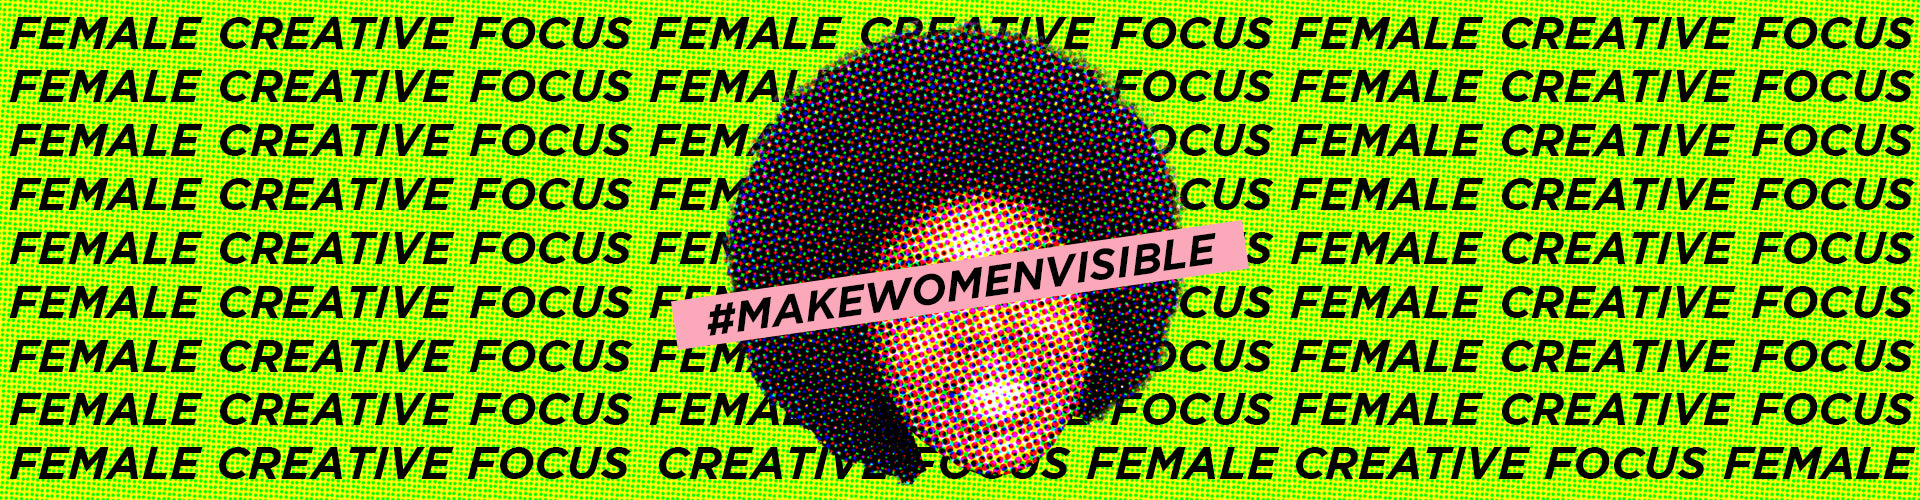 Female Creative Focus #MakeWomenVisible